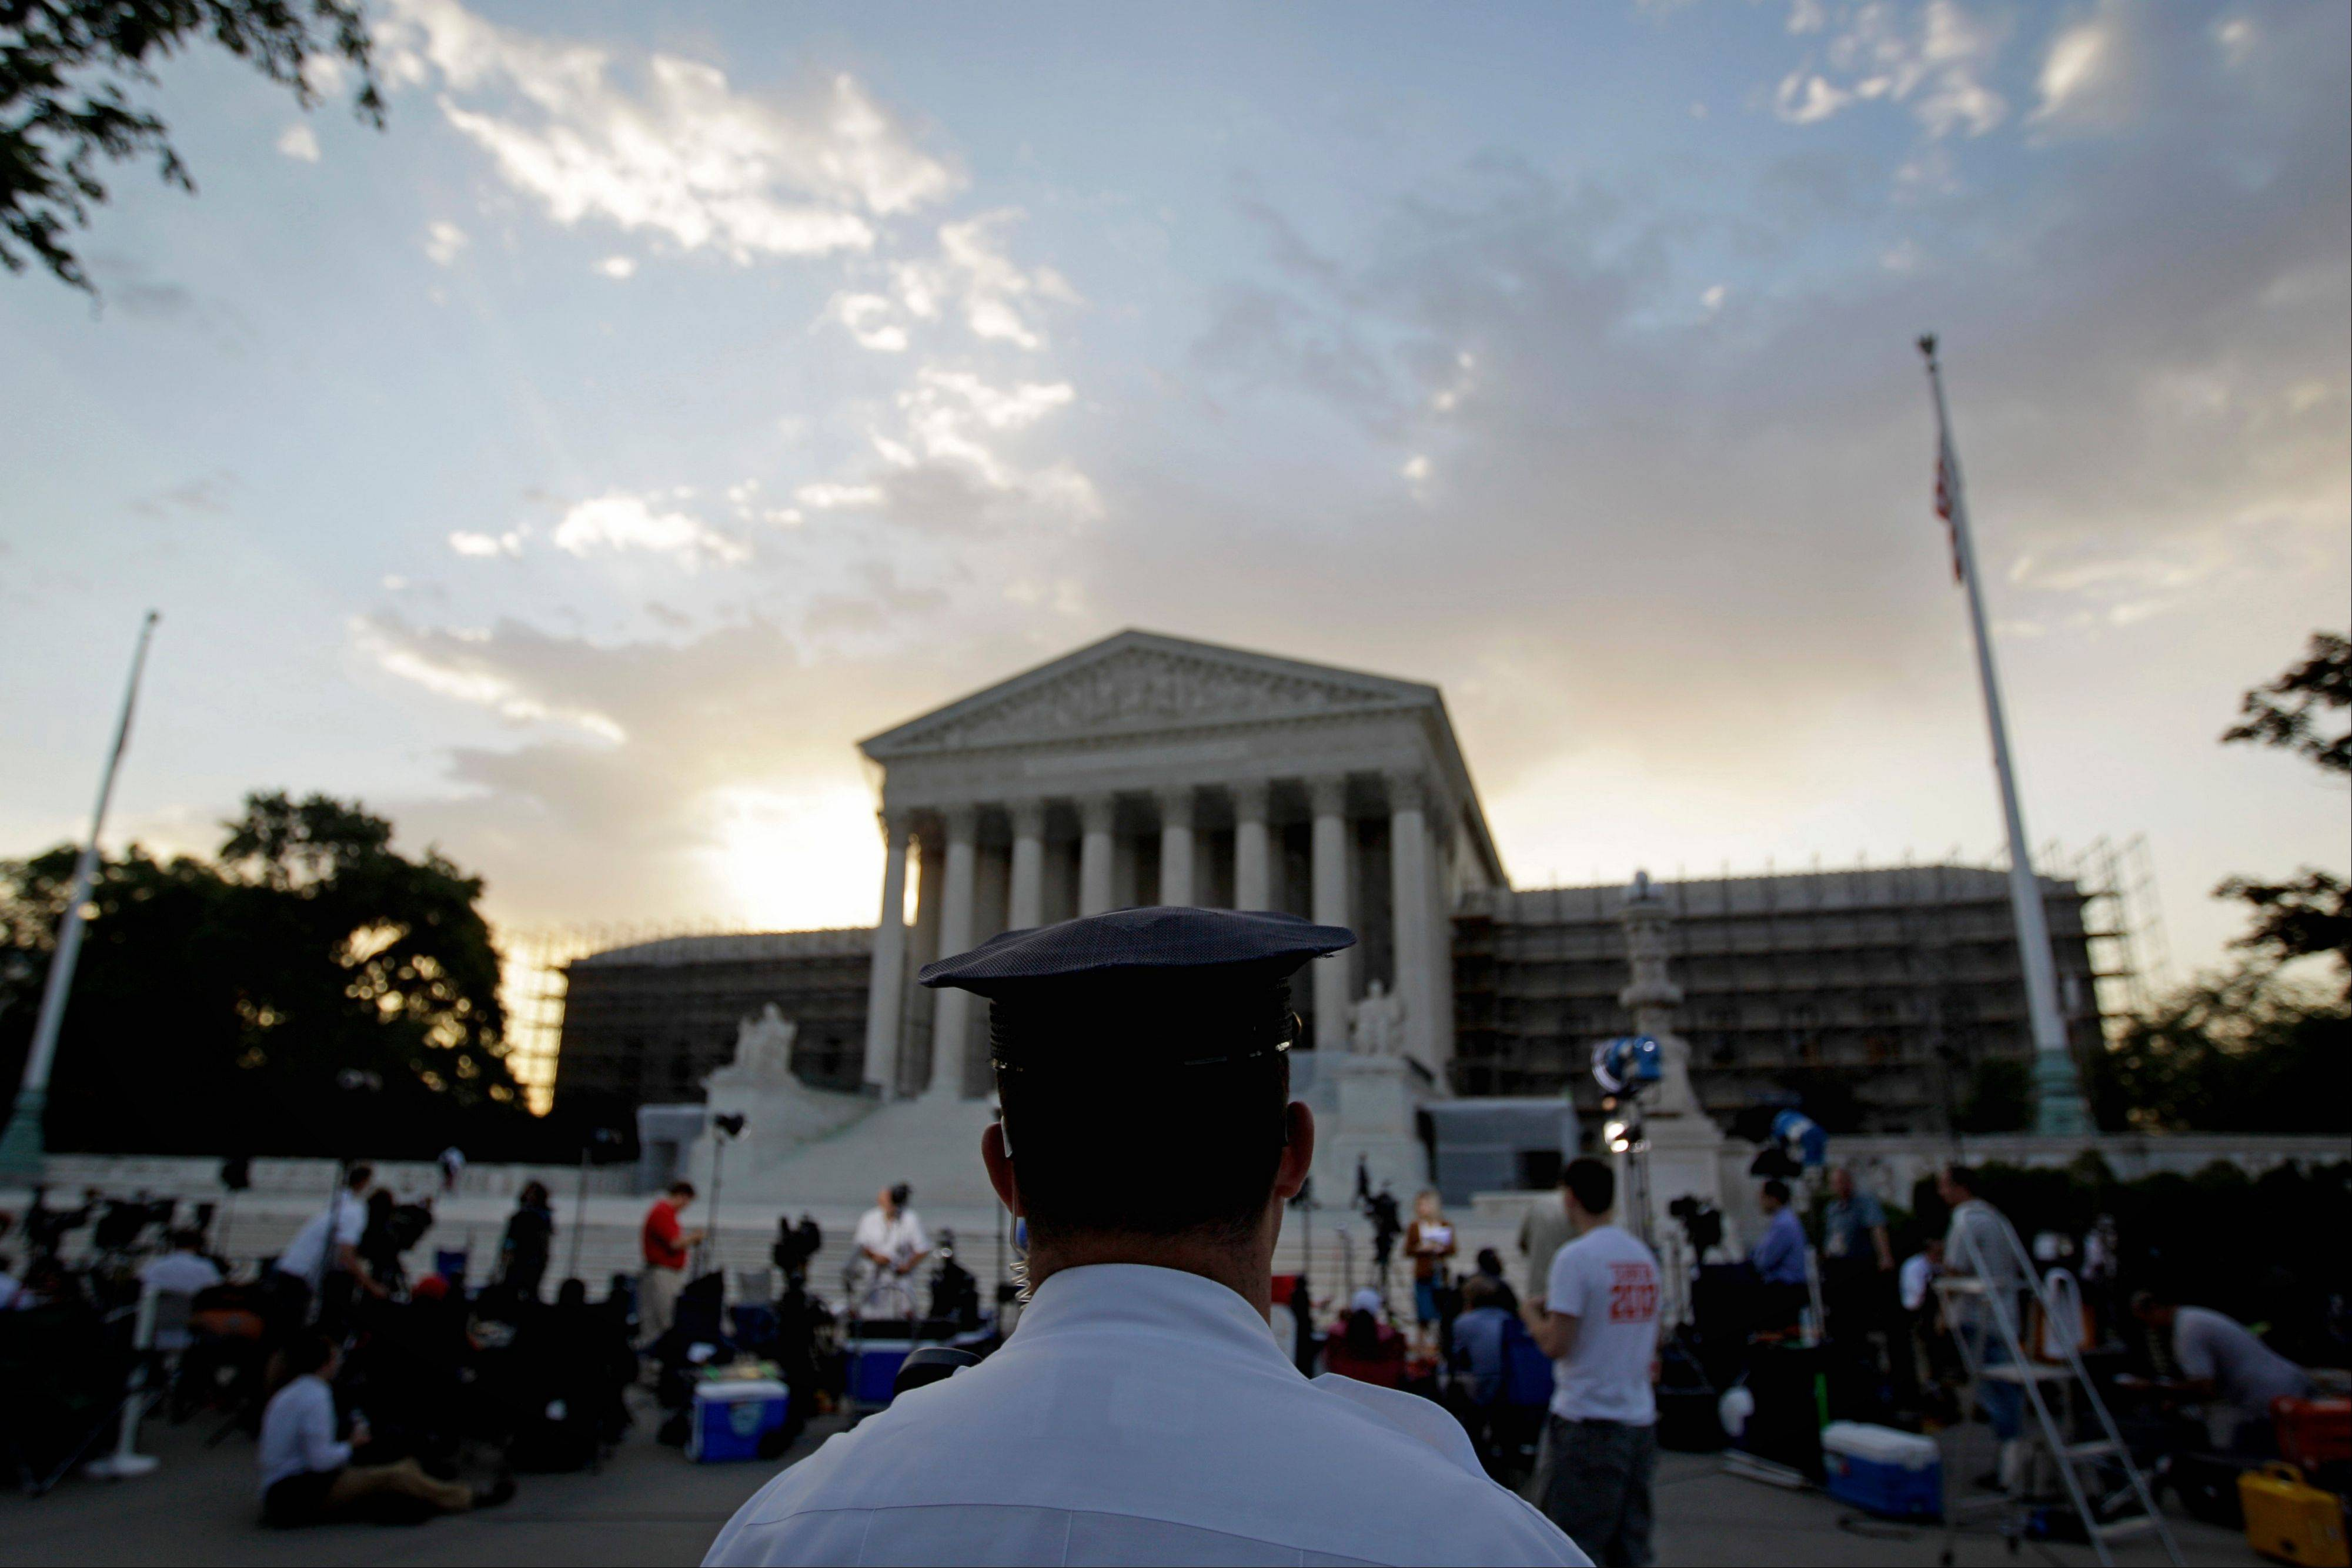 An officer stands outside the Supreme Court as media and the public gather Thursday, June 28, 2012, in Washington. Saving its biggest case for last, the Supreme Court is expected to announce its verdict Thursday on President Barack Obama's health care law.